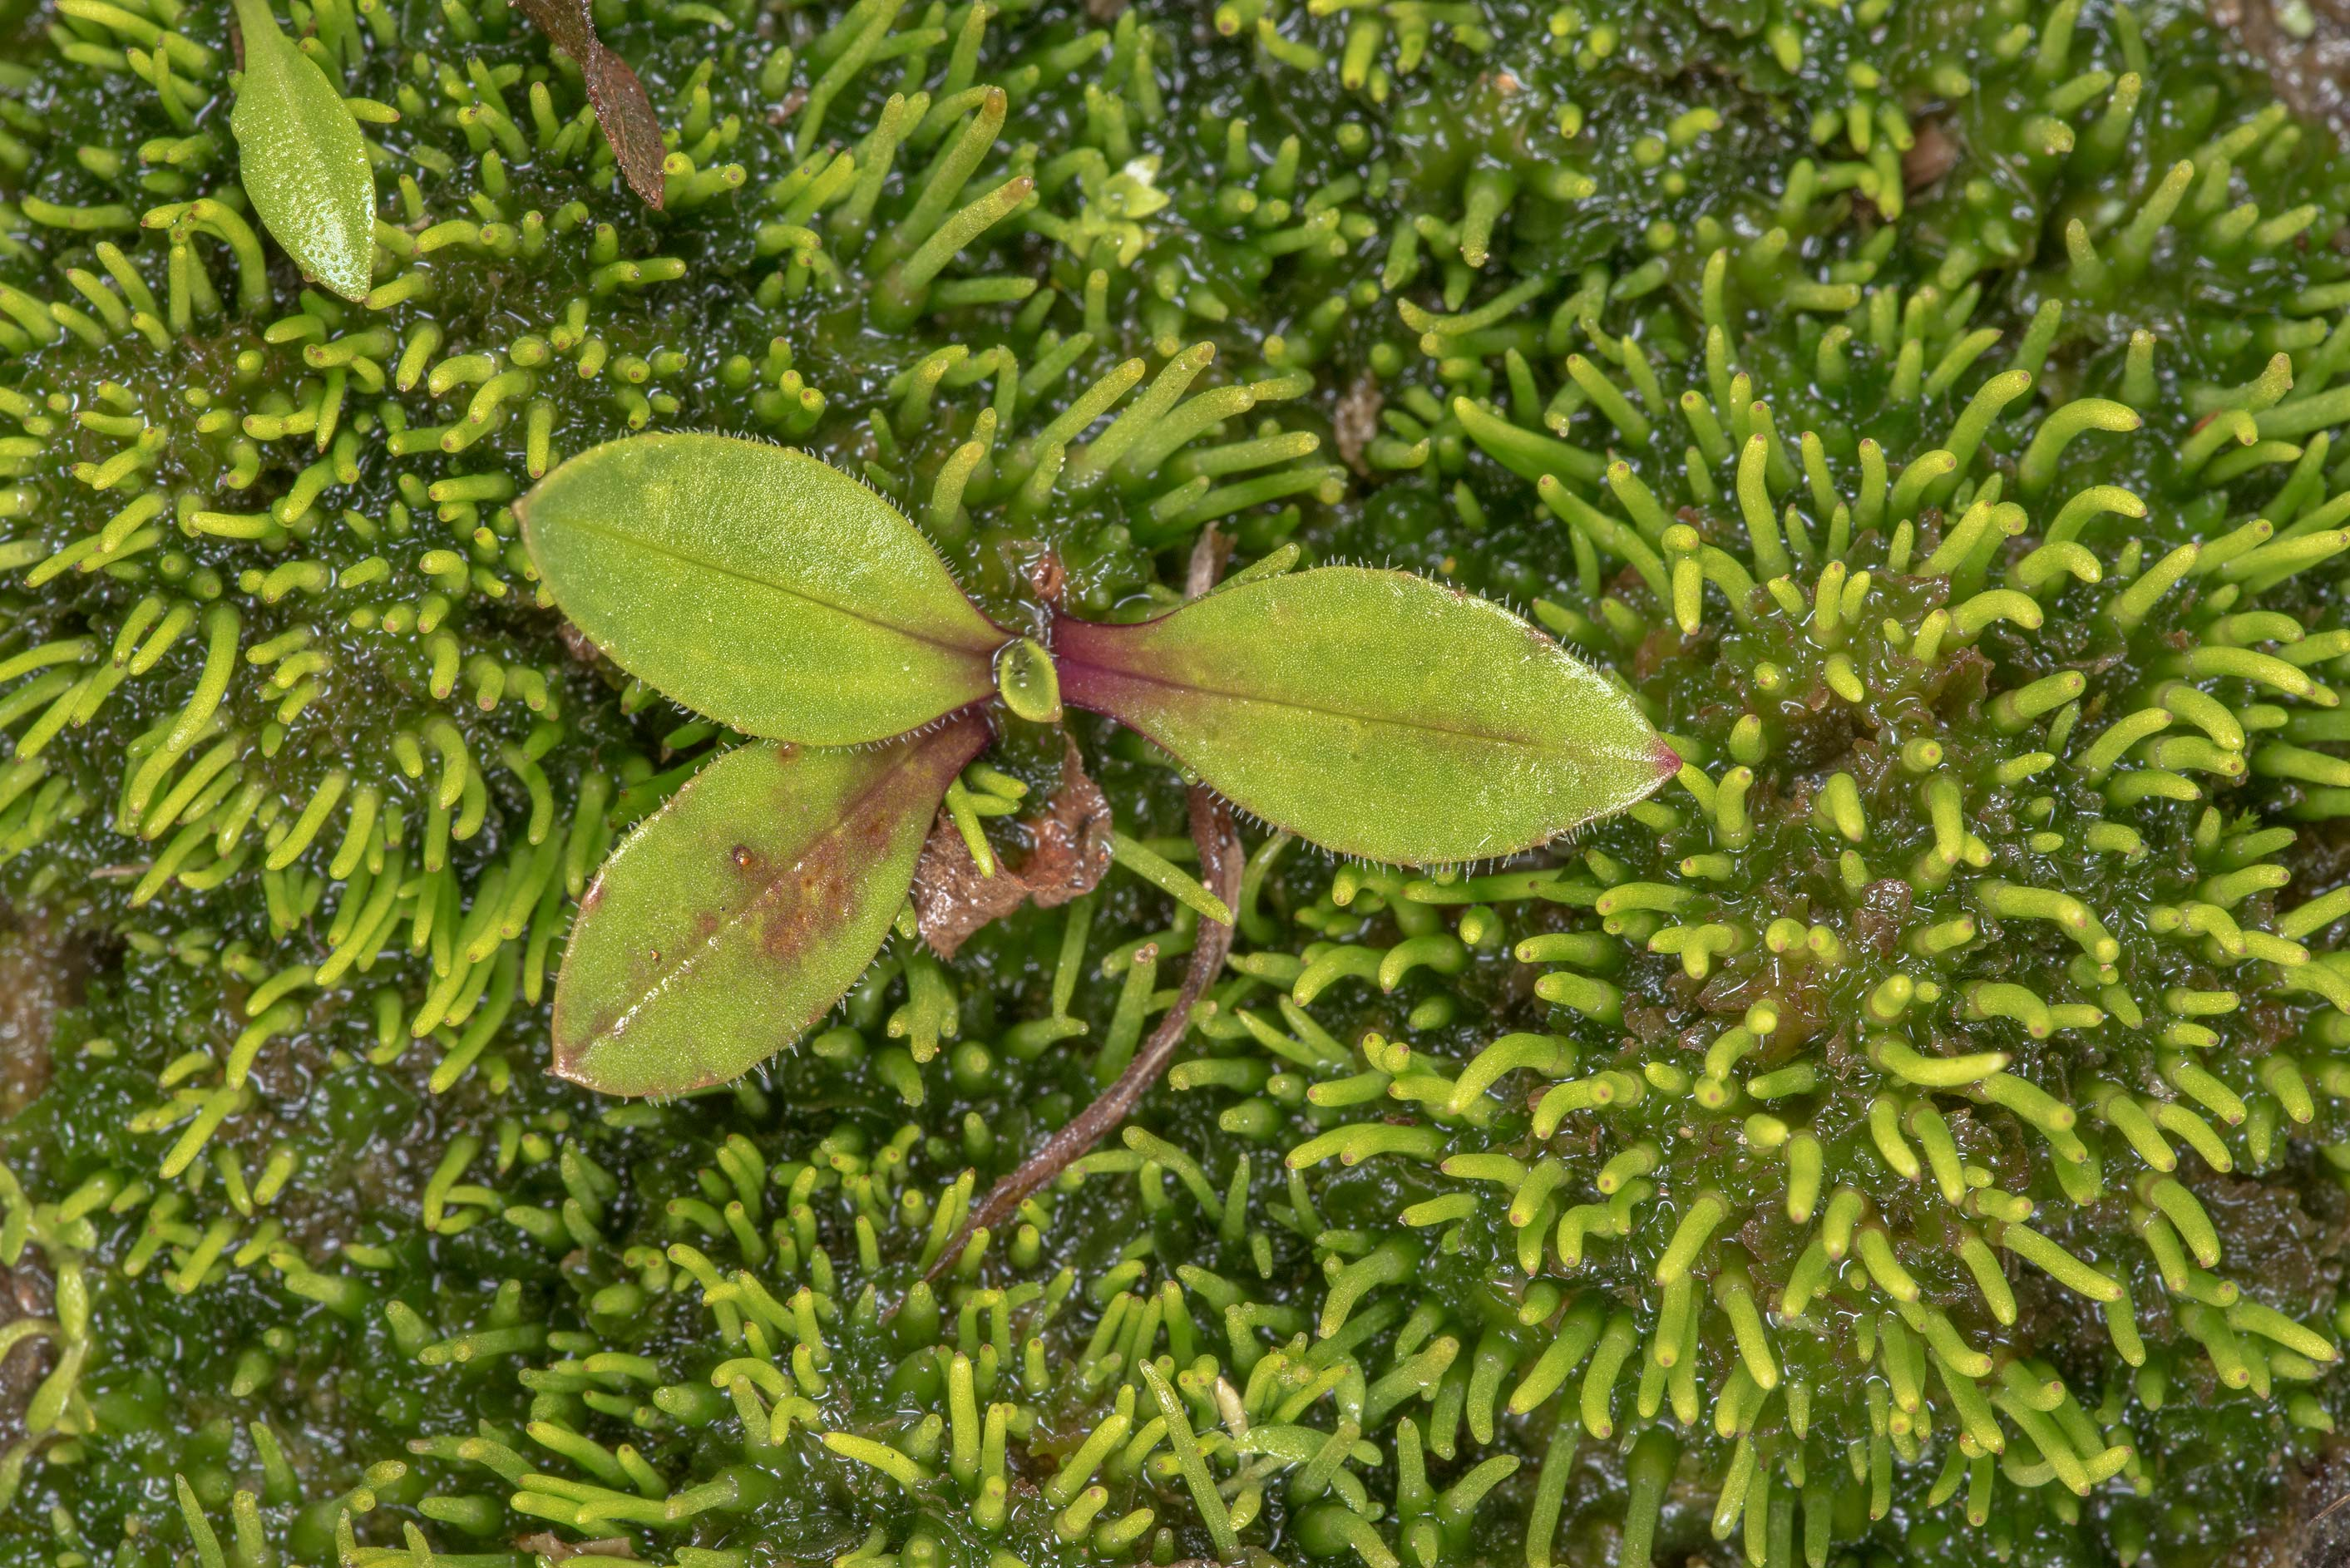 Winter rosette of some plant among smooth...Creek Park. College Station, Texas